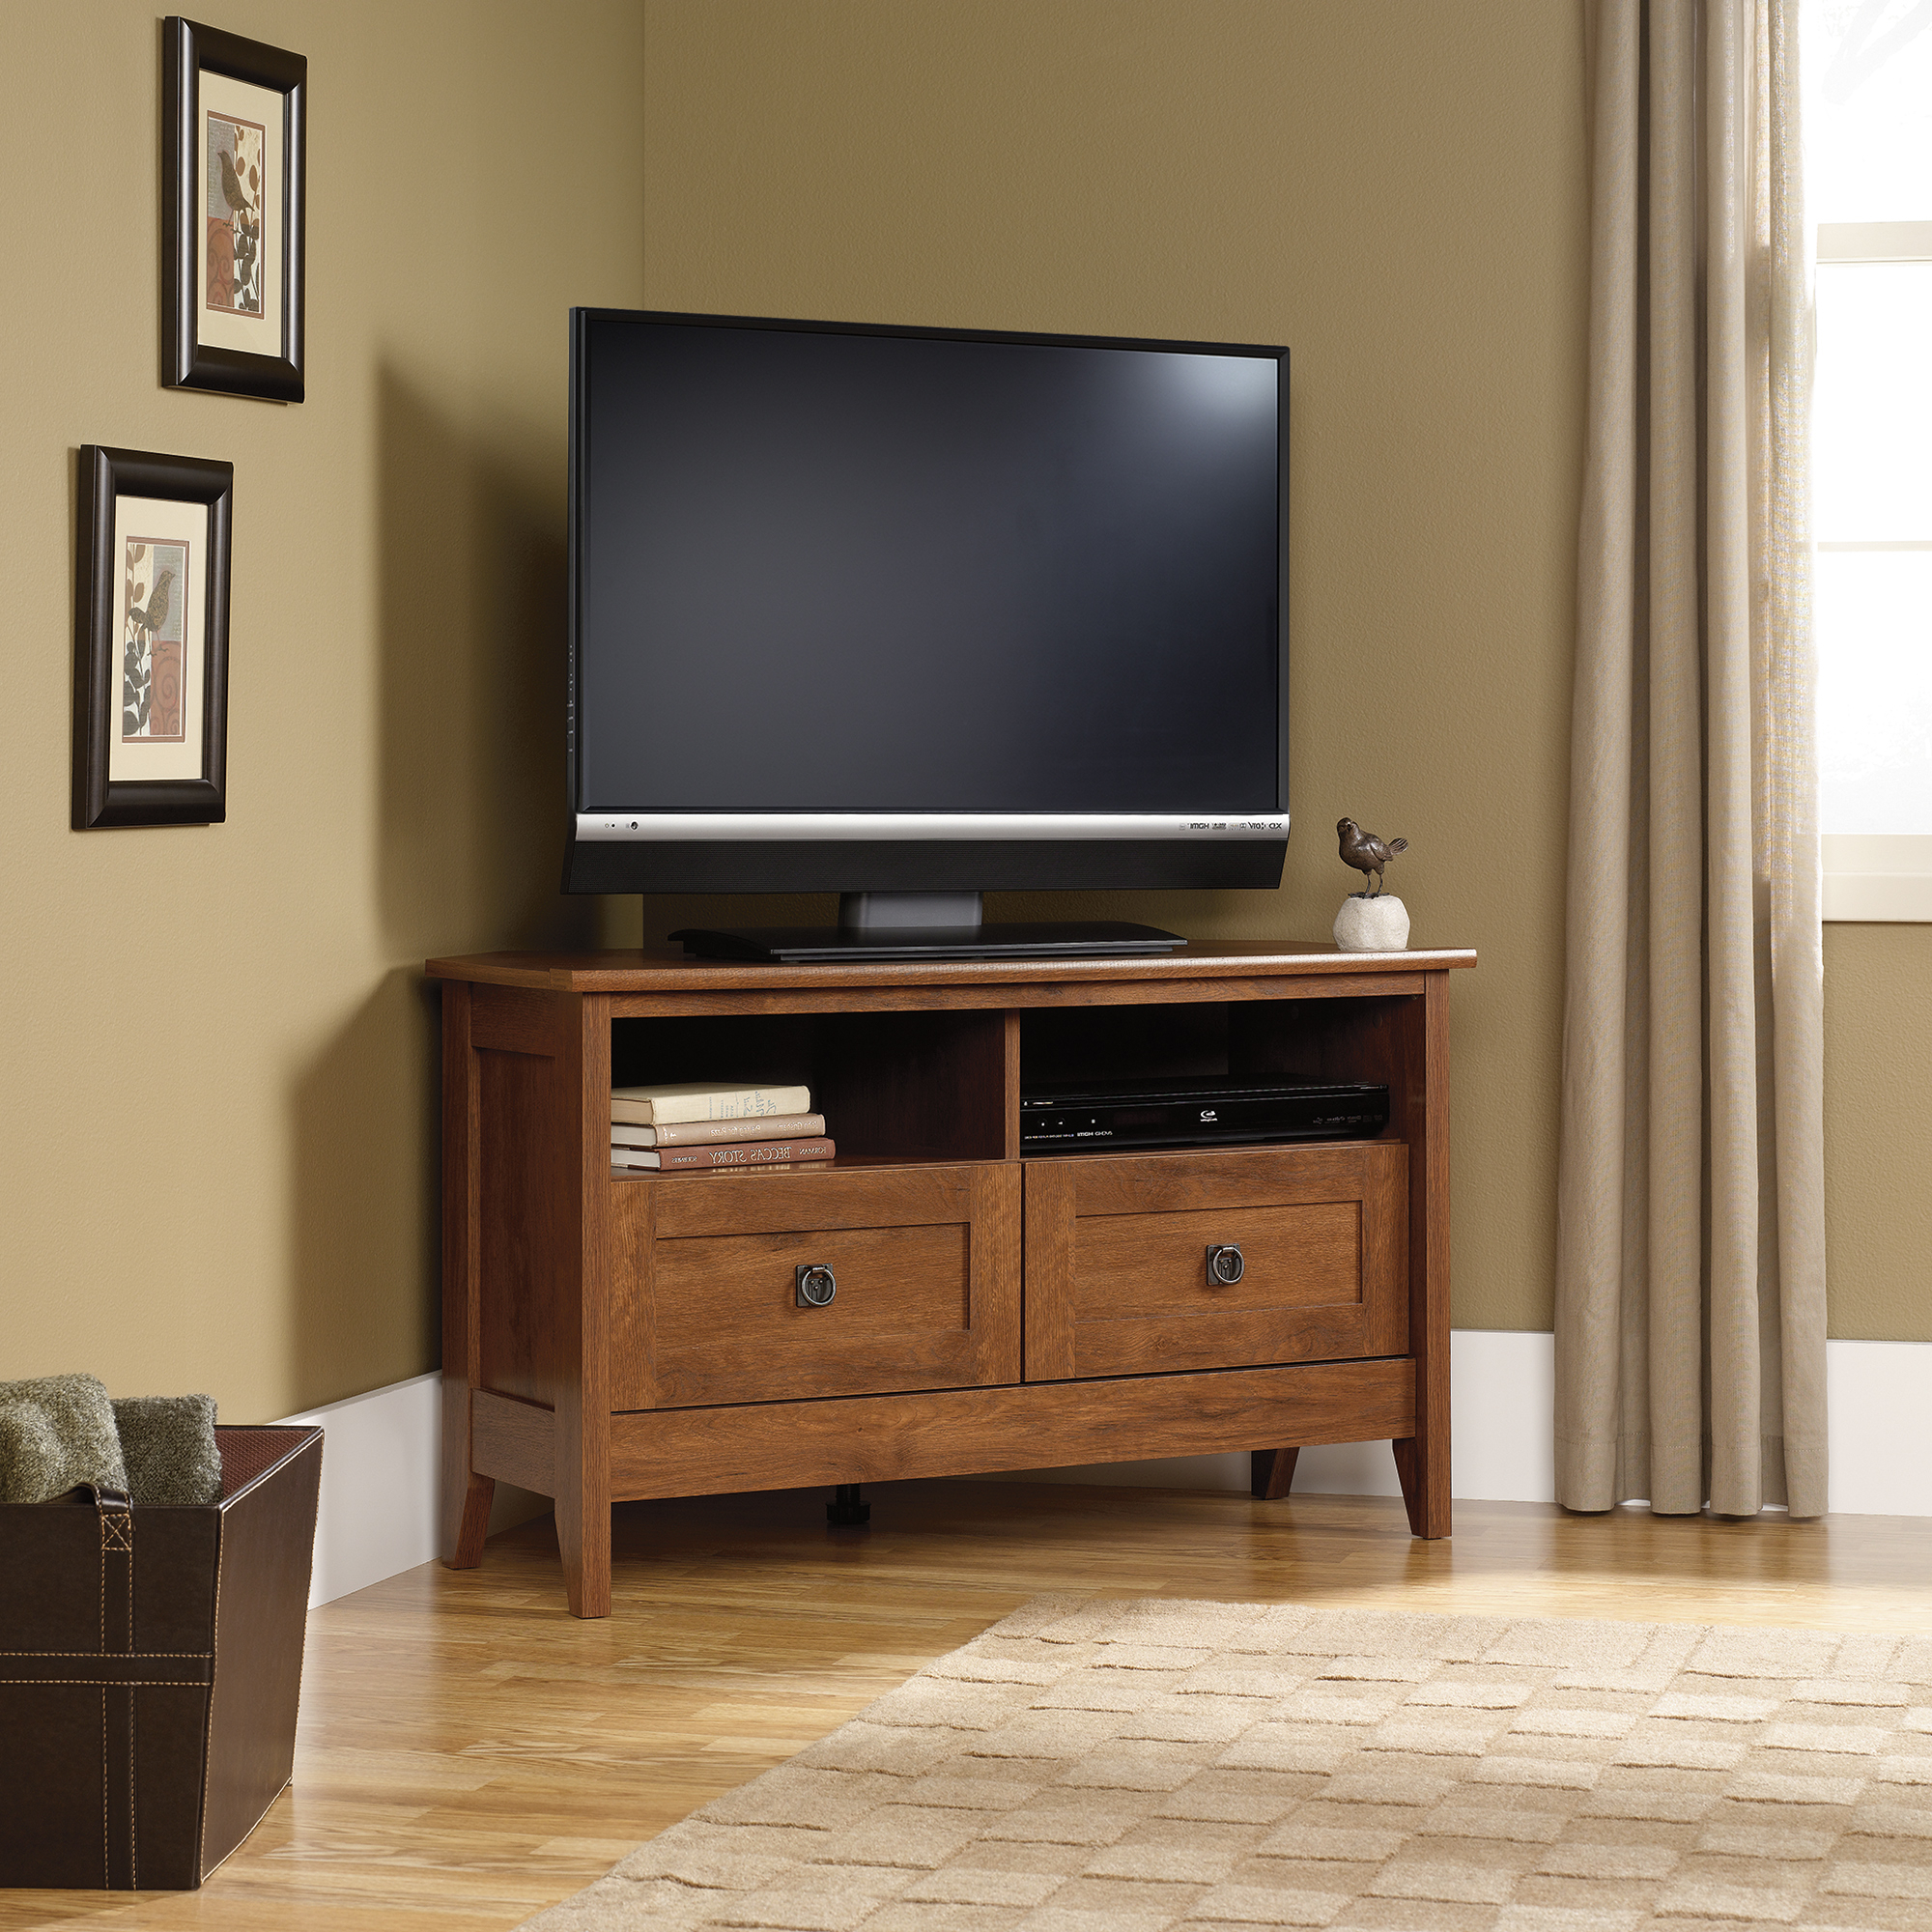 Sauder For Famous Corner Wooden Tv Cabinets (Gallery 3 of 20)